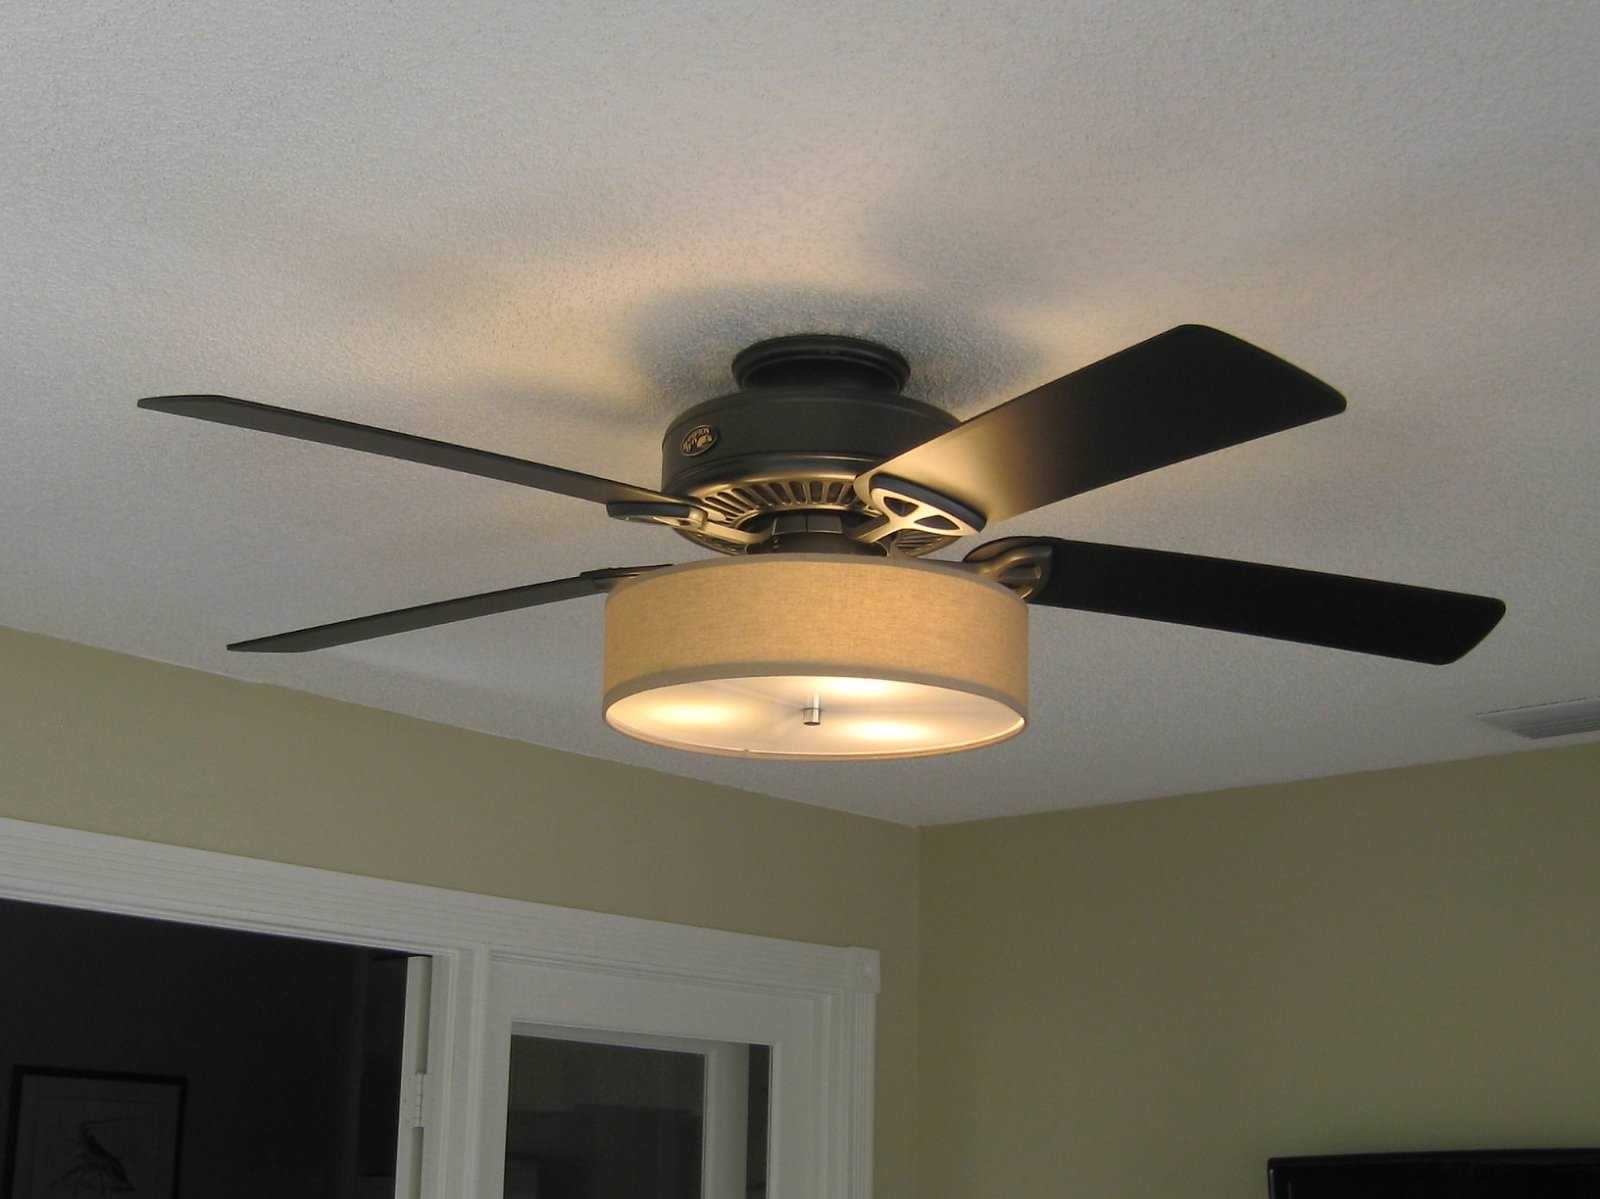 Low Profile Linen Drum Shade Light Kit for Ceiling Fan - S.T. ...